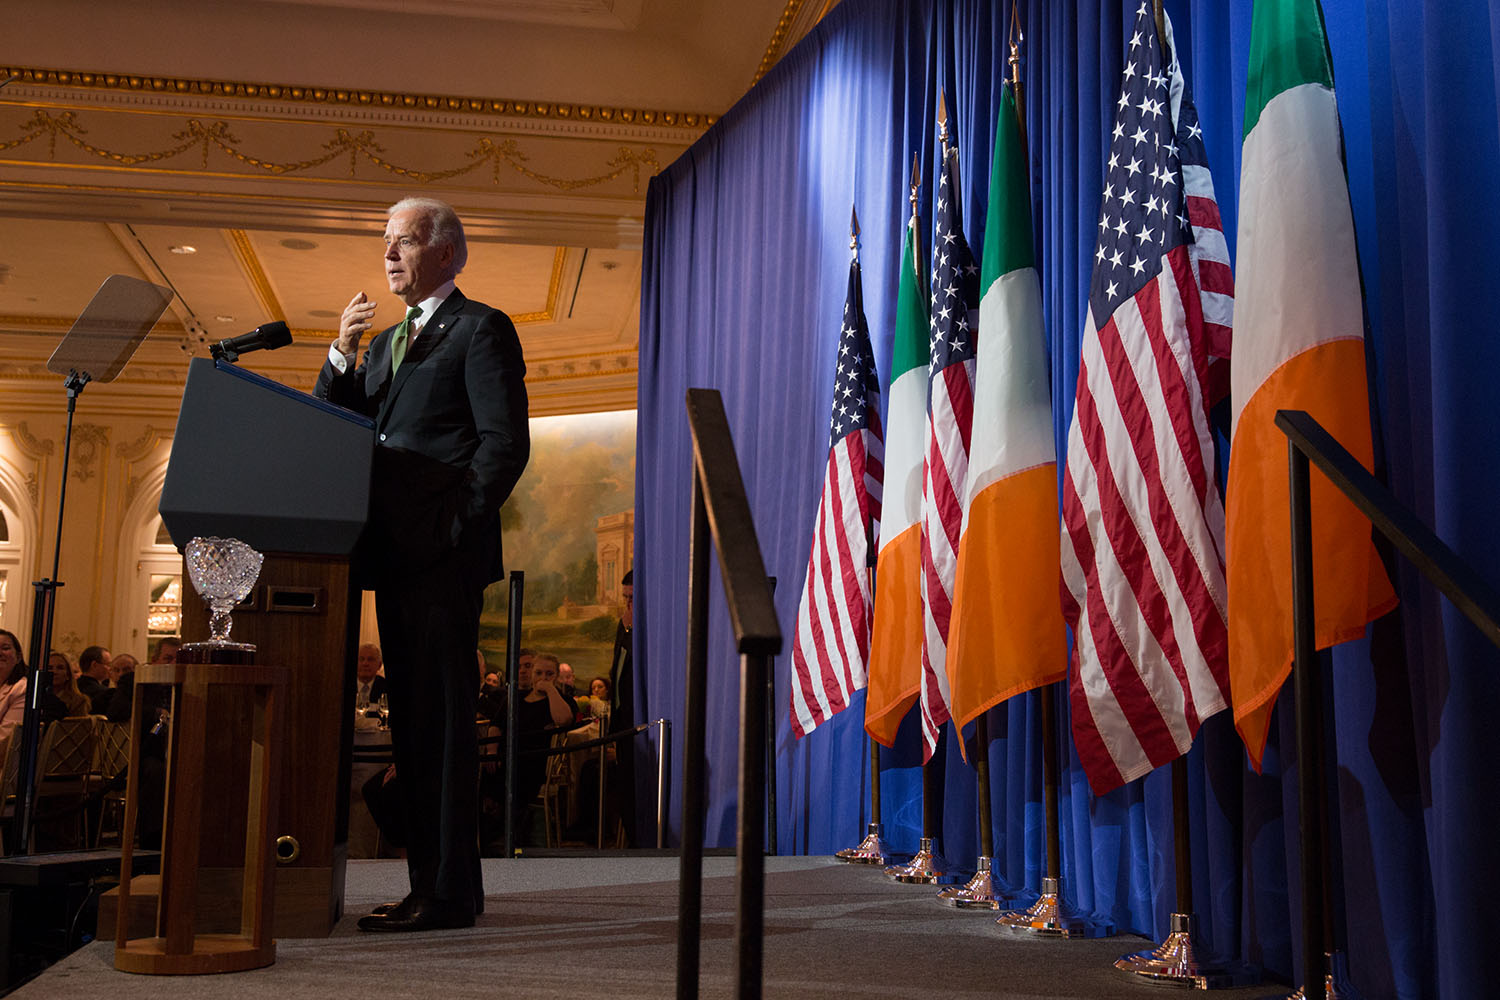 Vice President Joe Biden delivers remarks at the Irish American Hall of Fame luncheon